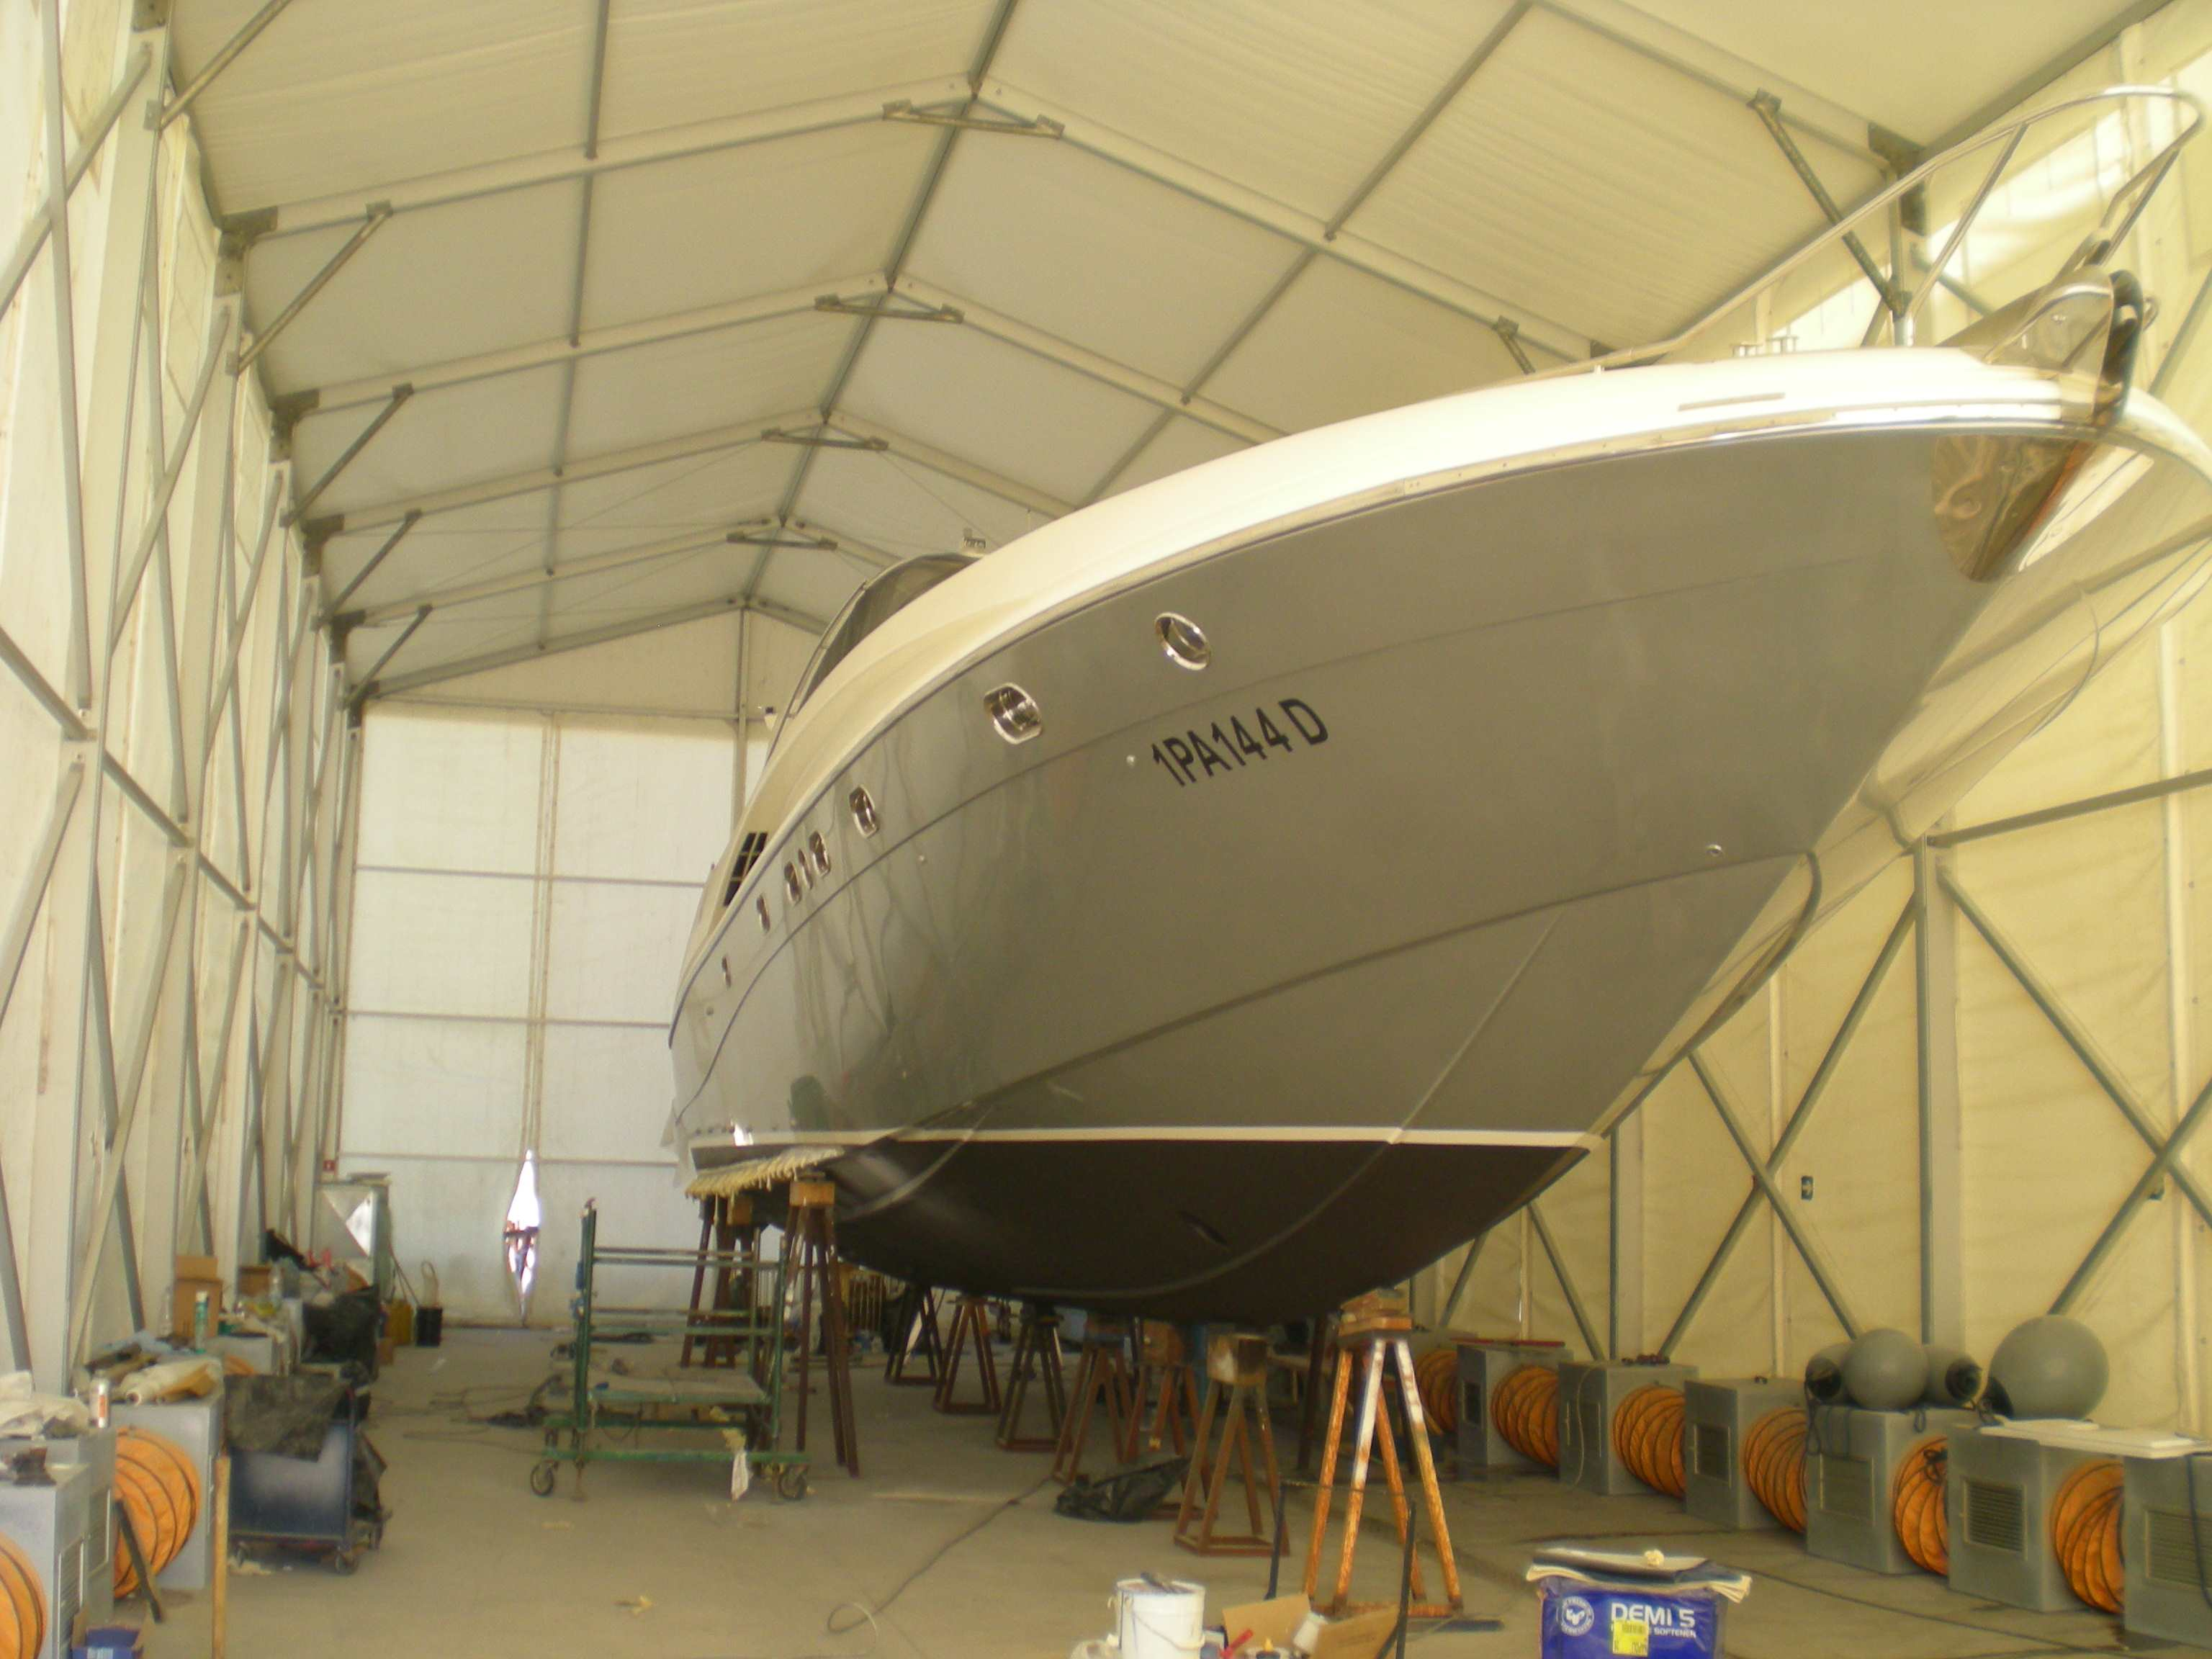 Yachtgarage trattamento aria air treatment systems for Piani di garage in cabina